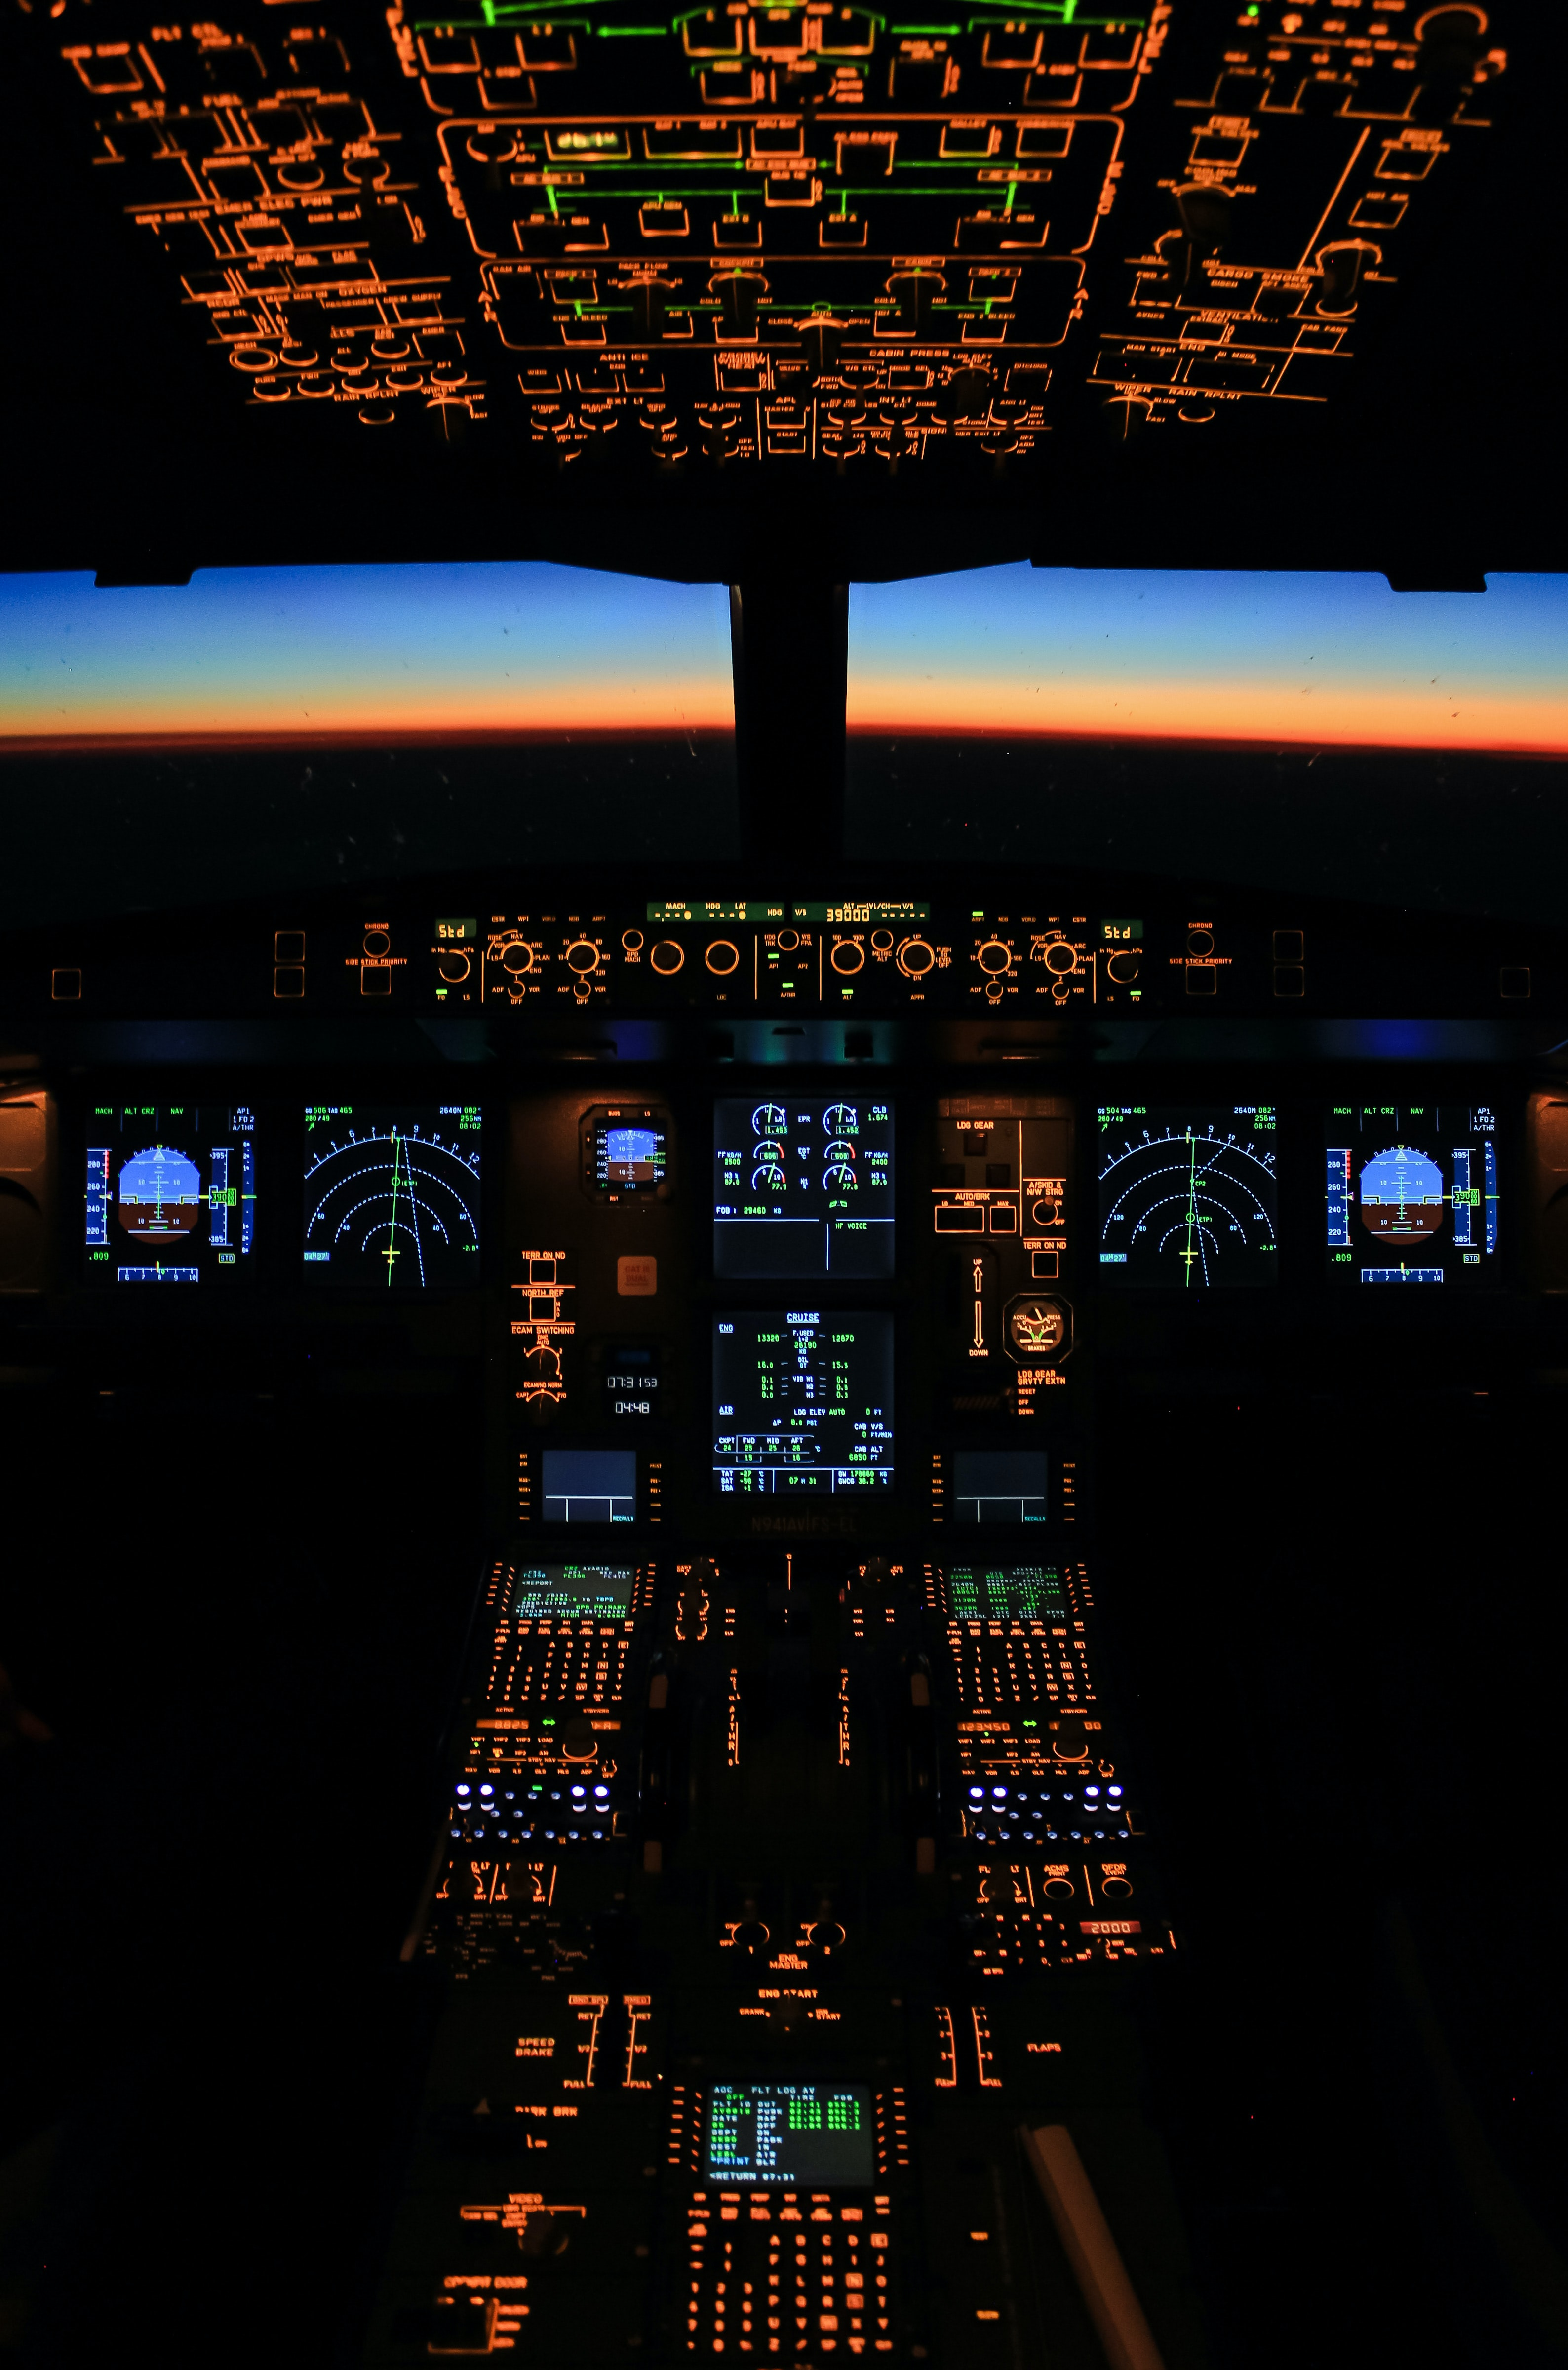 100101 download wallpaper Technology, Evening, Plane, Airplane, Buttons, Technologies, Panel, Cabin, Display screensavers and pictures for free